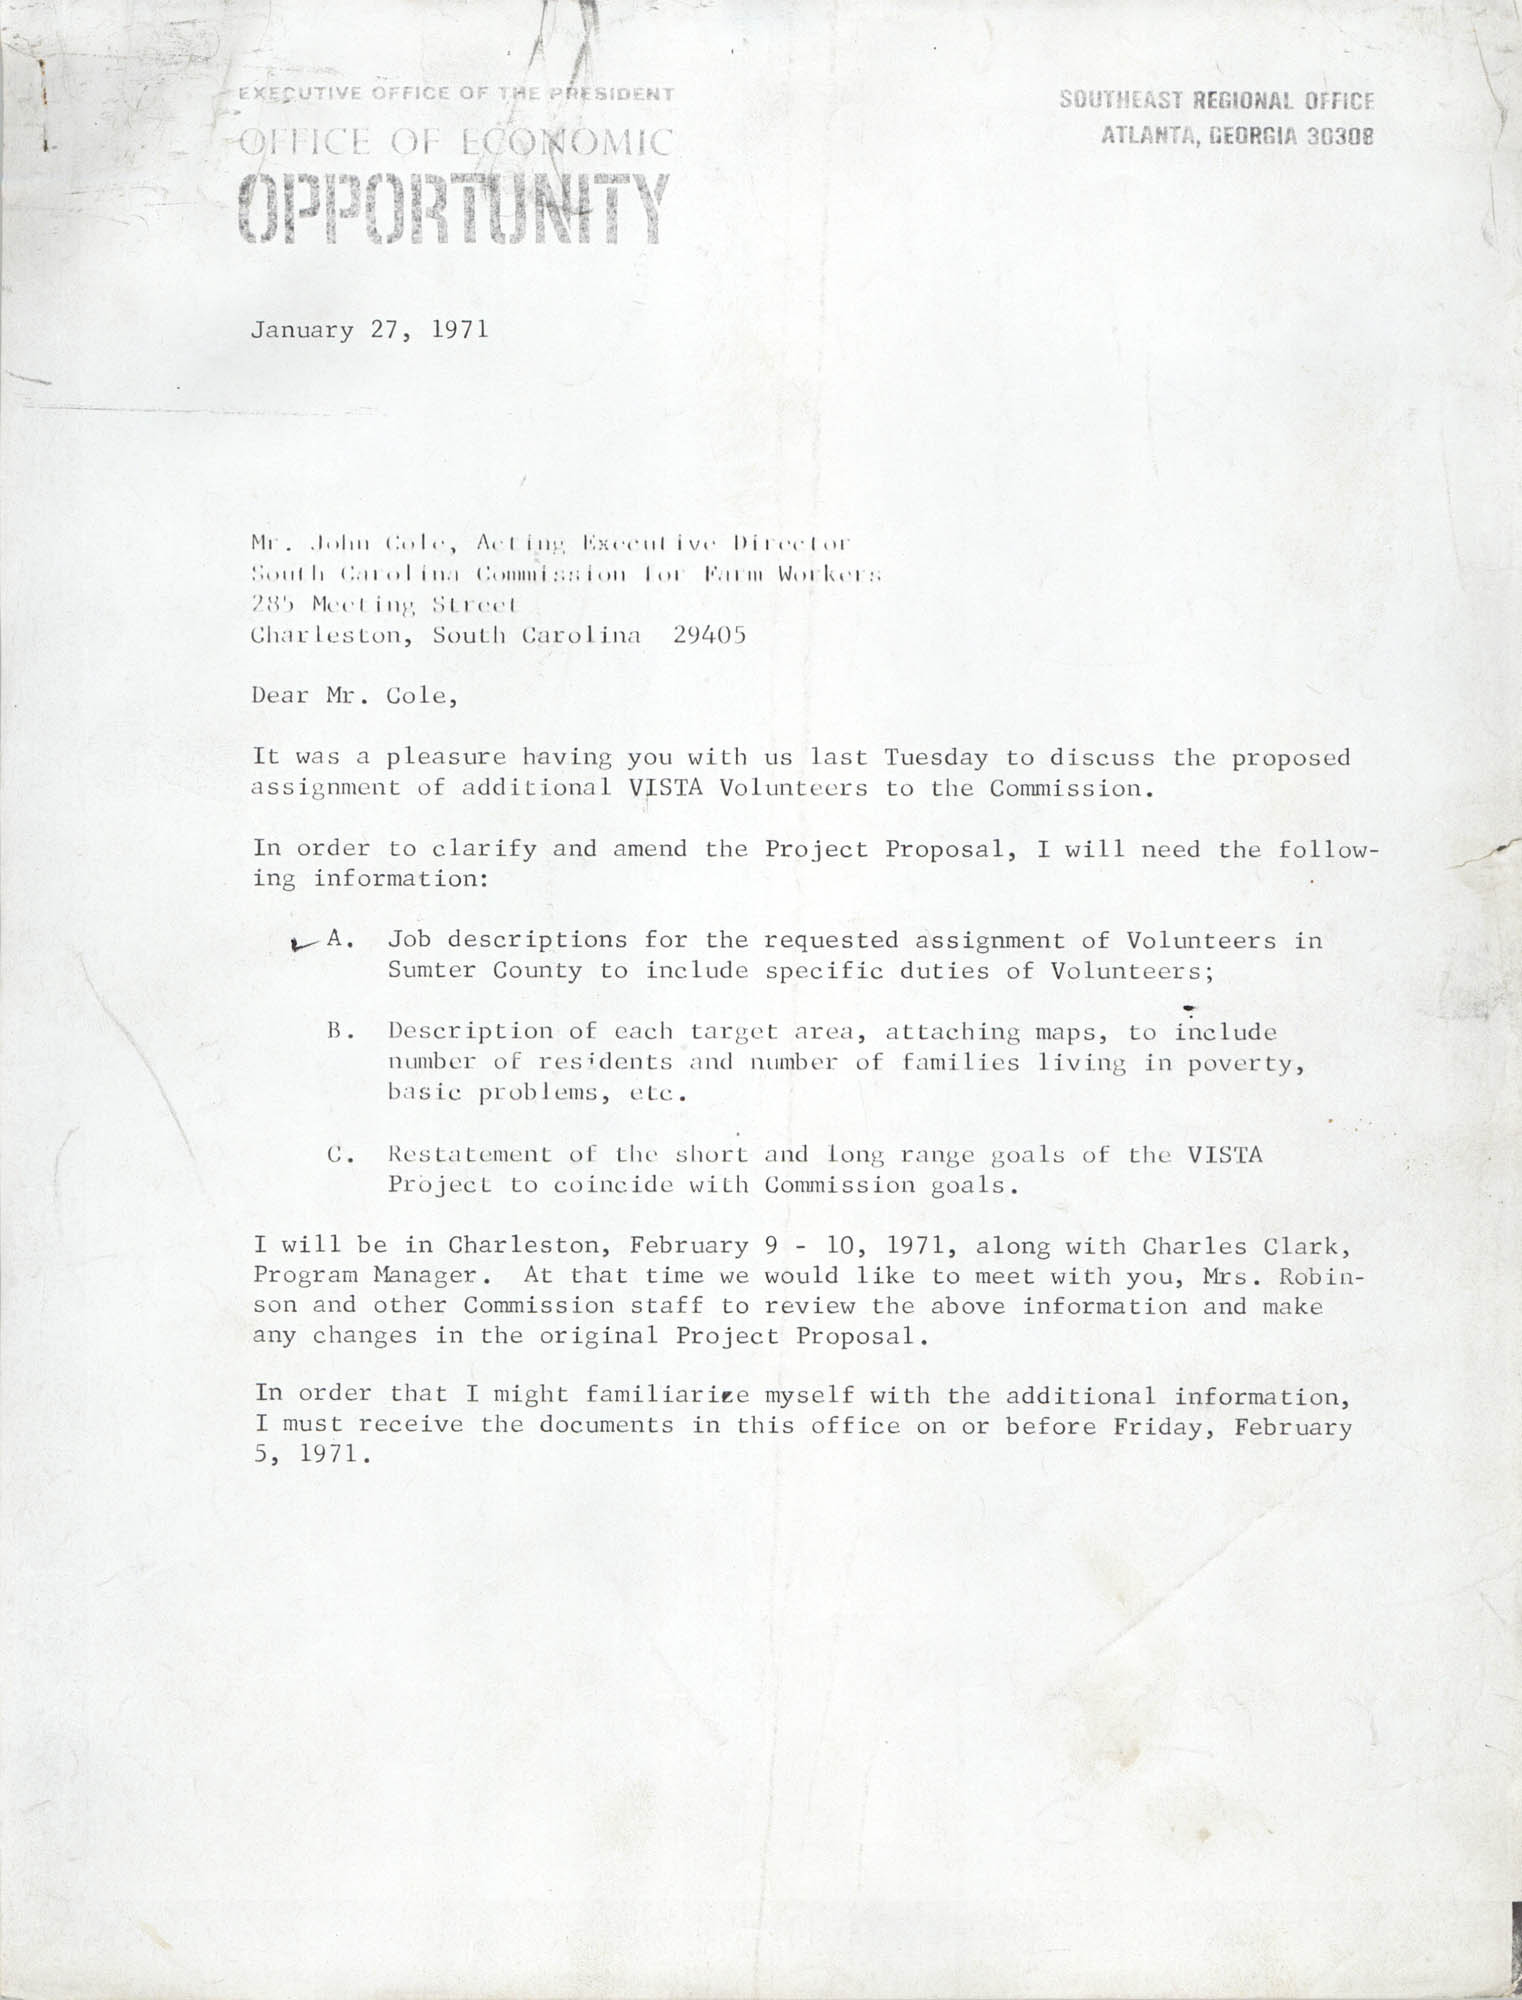 Letter from Charles R. Jackson and B.I. Cheney, Jr. to John Cole, January 27, 1971